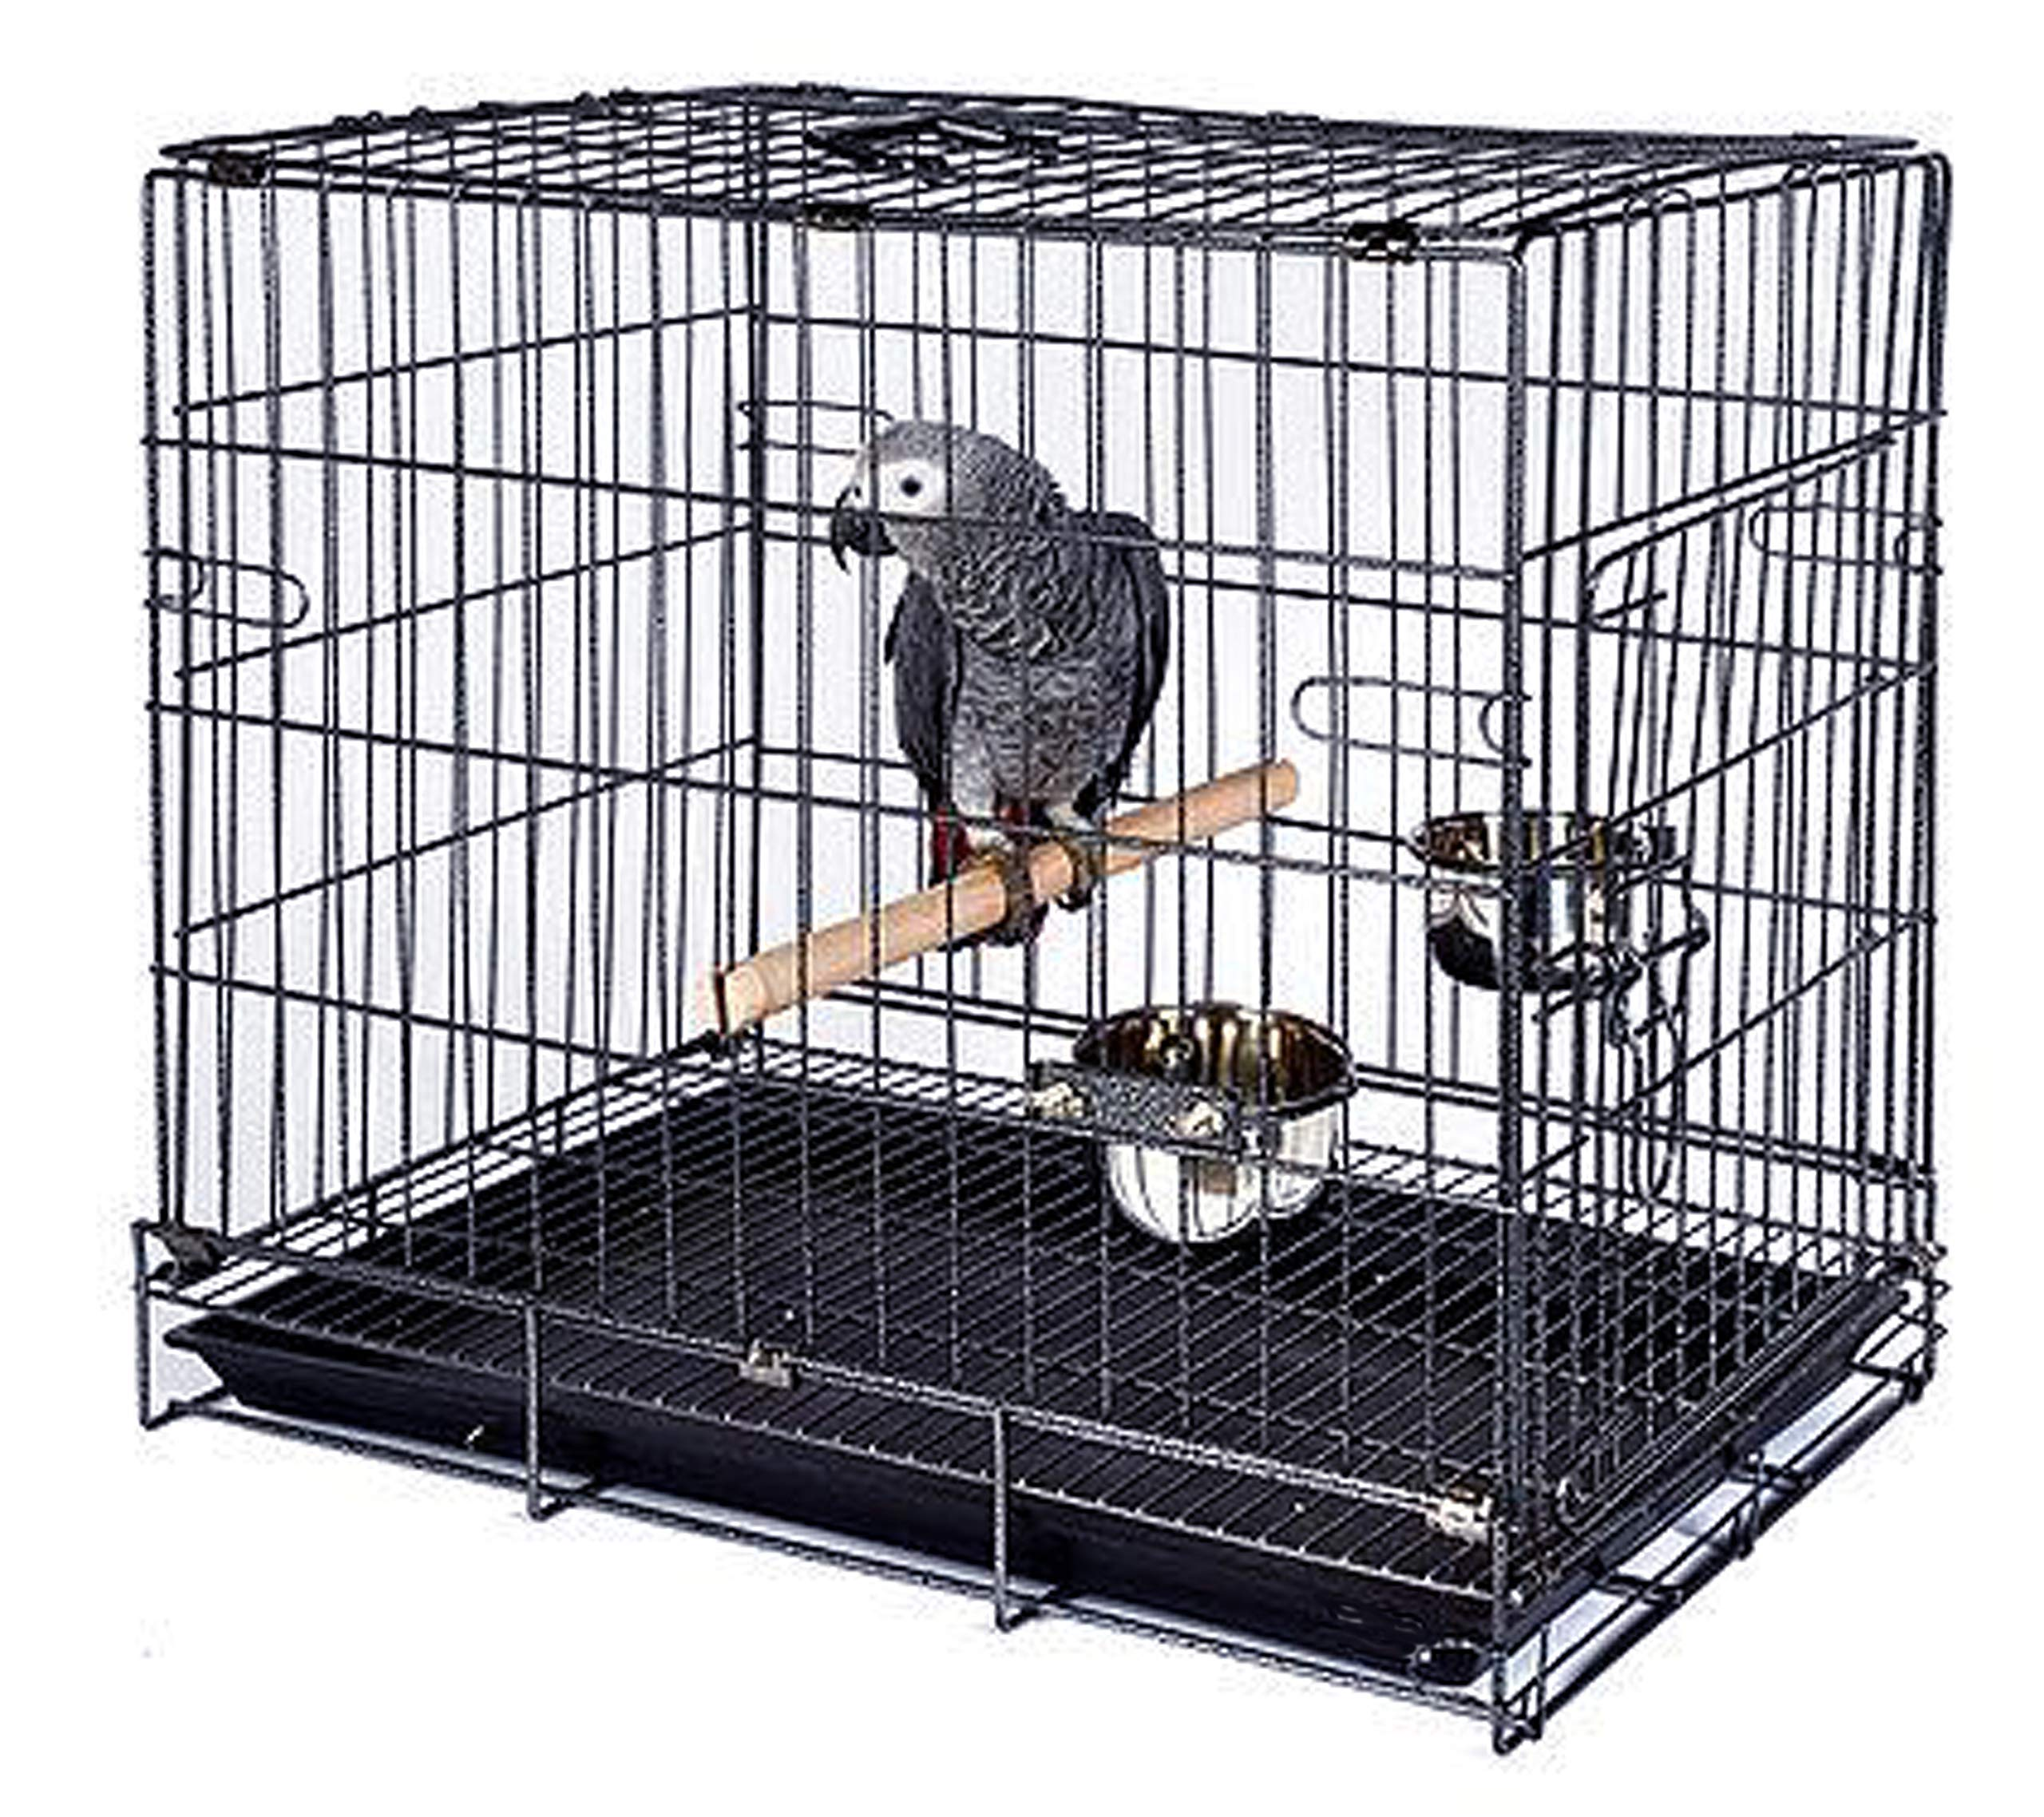 Mcage Travel Bird Parrot Cage Carrier Foldable with Bowls and Perch by Mcage